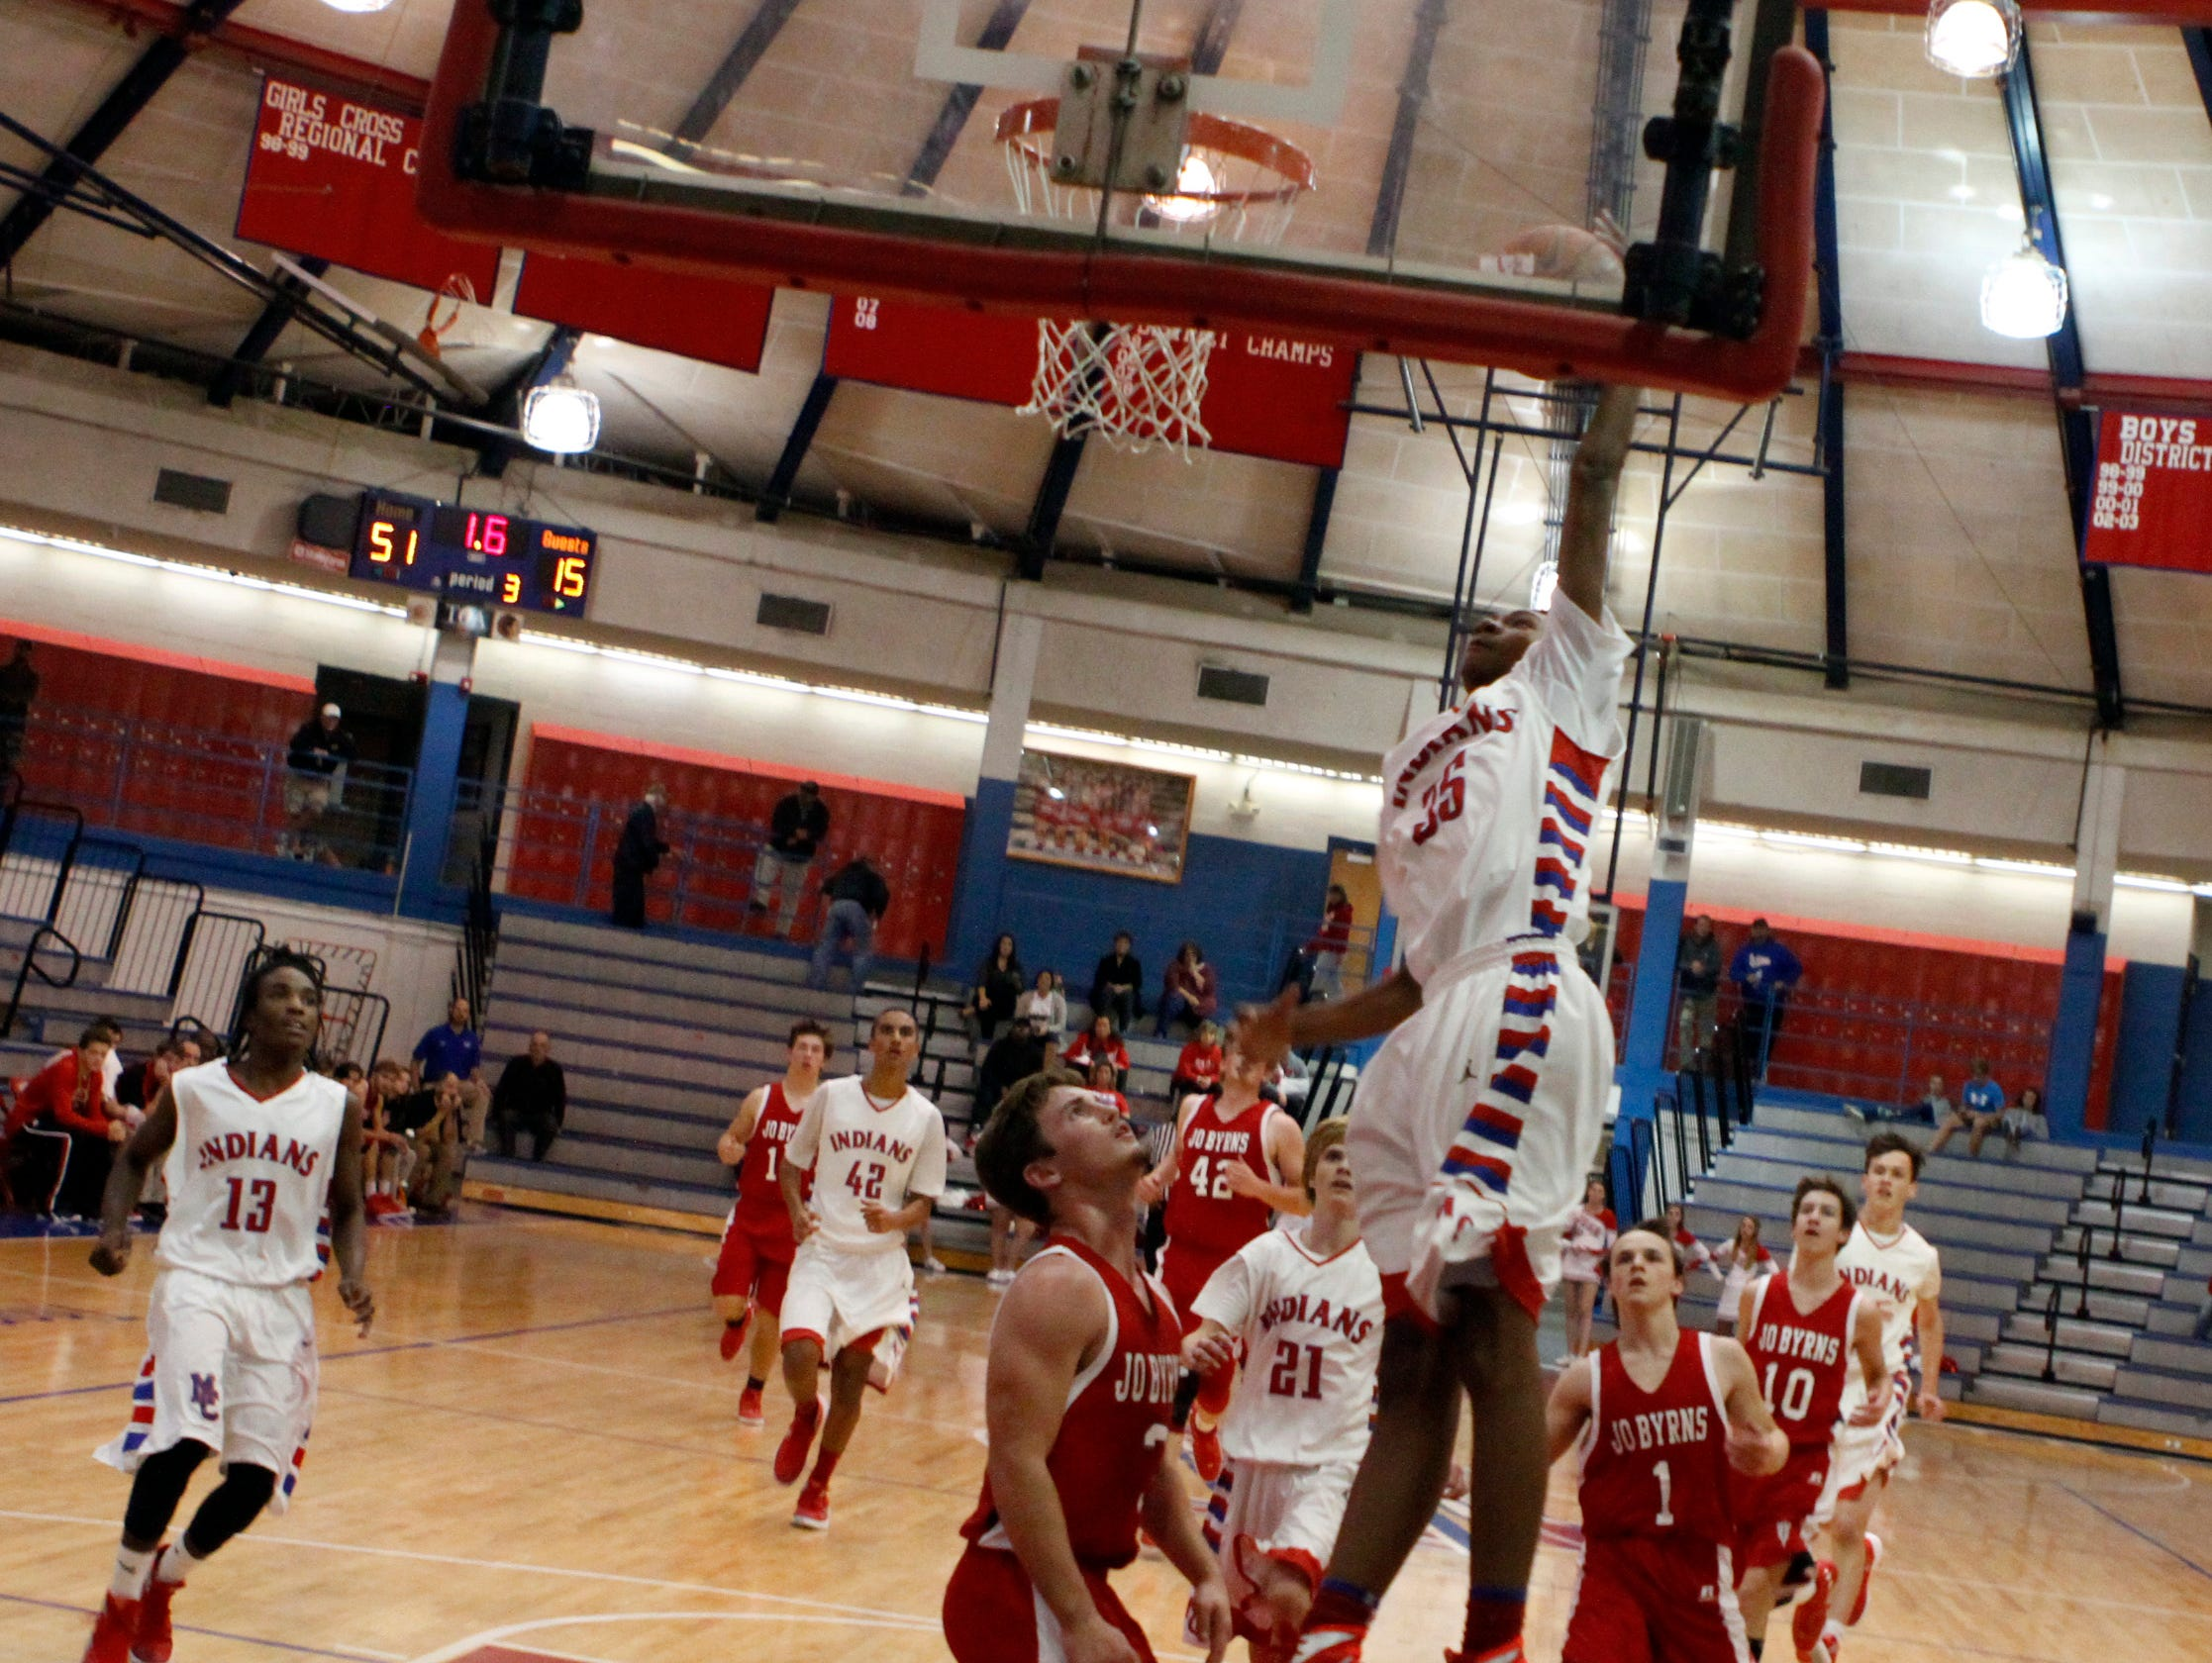 Trey Spencer went for the slam on a fast break against the Jo Byrns Red Devils Friday. The Indians won their season opener 55-20.